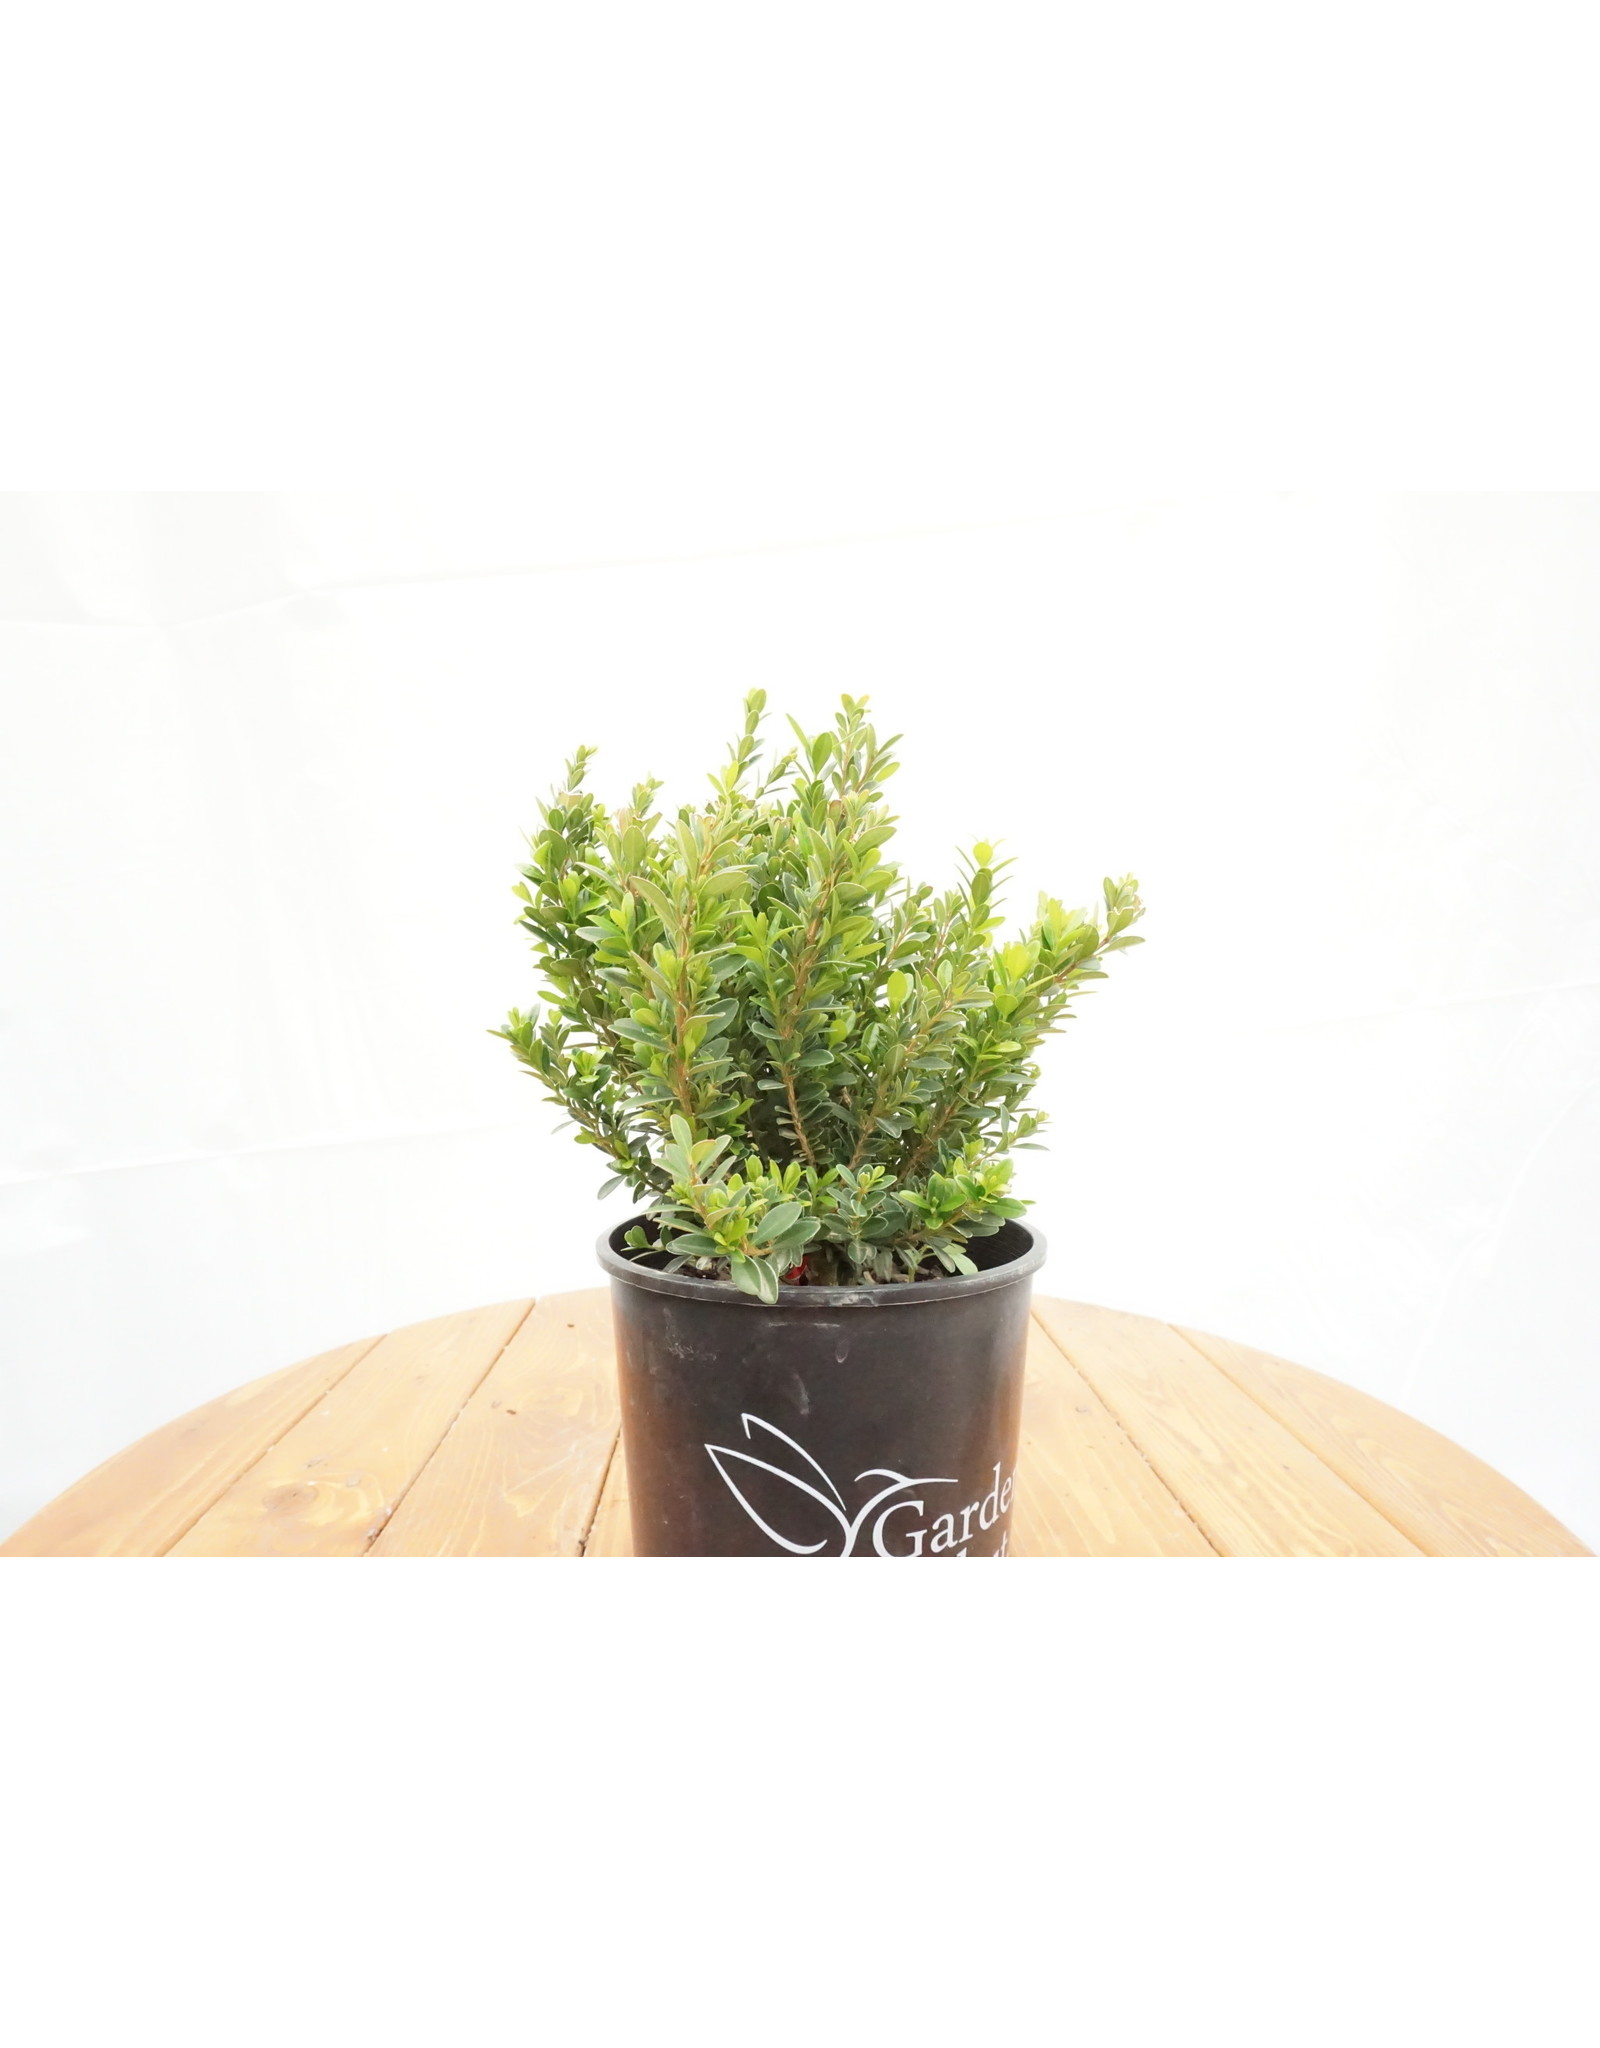 Boxwood - Buxus 'Baby Jade' - 1 Gallon